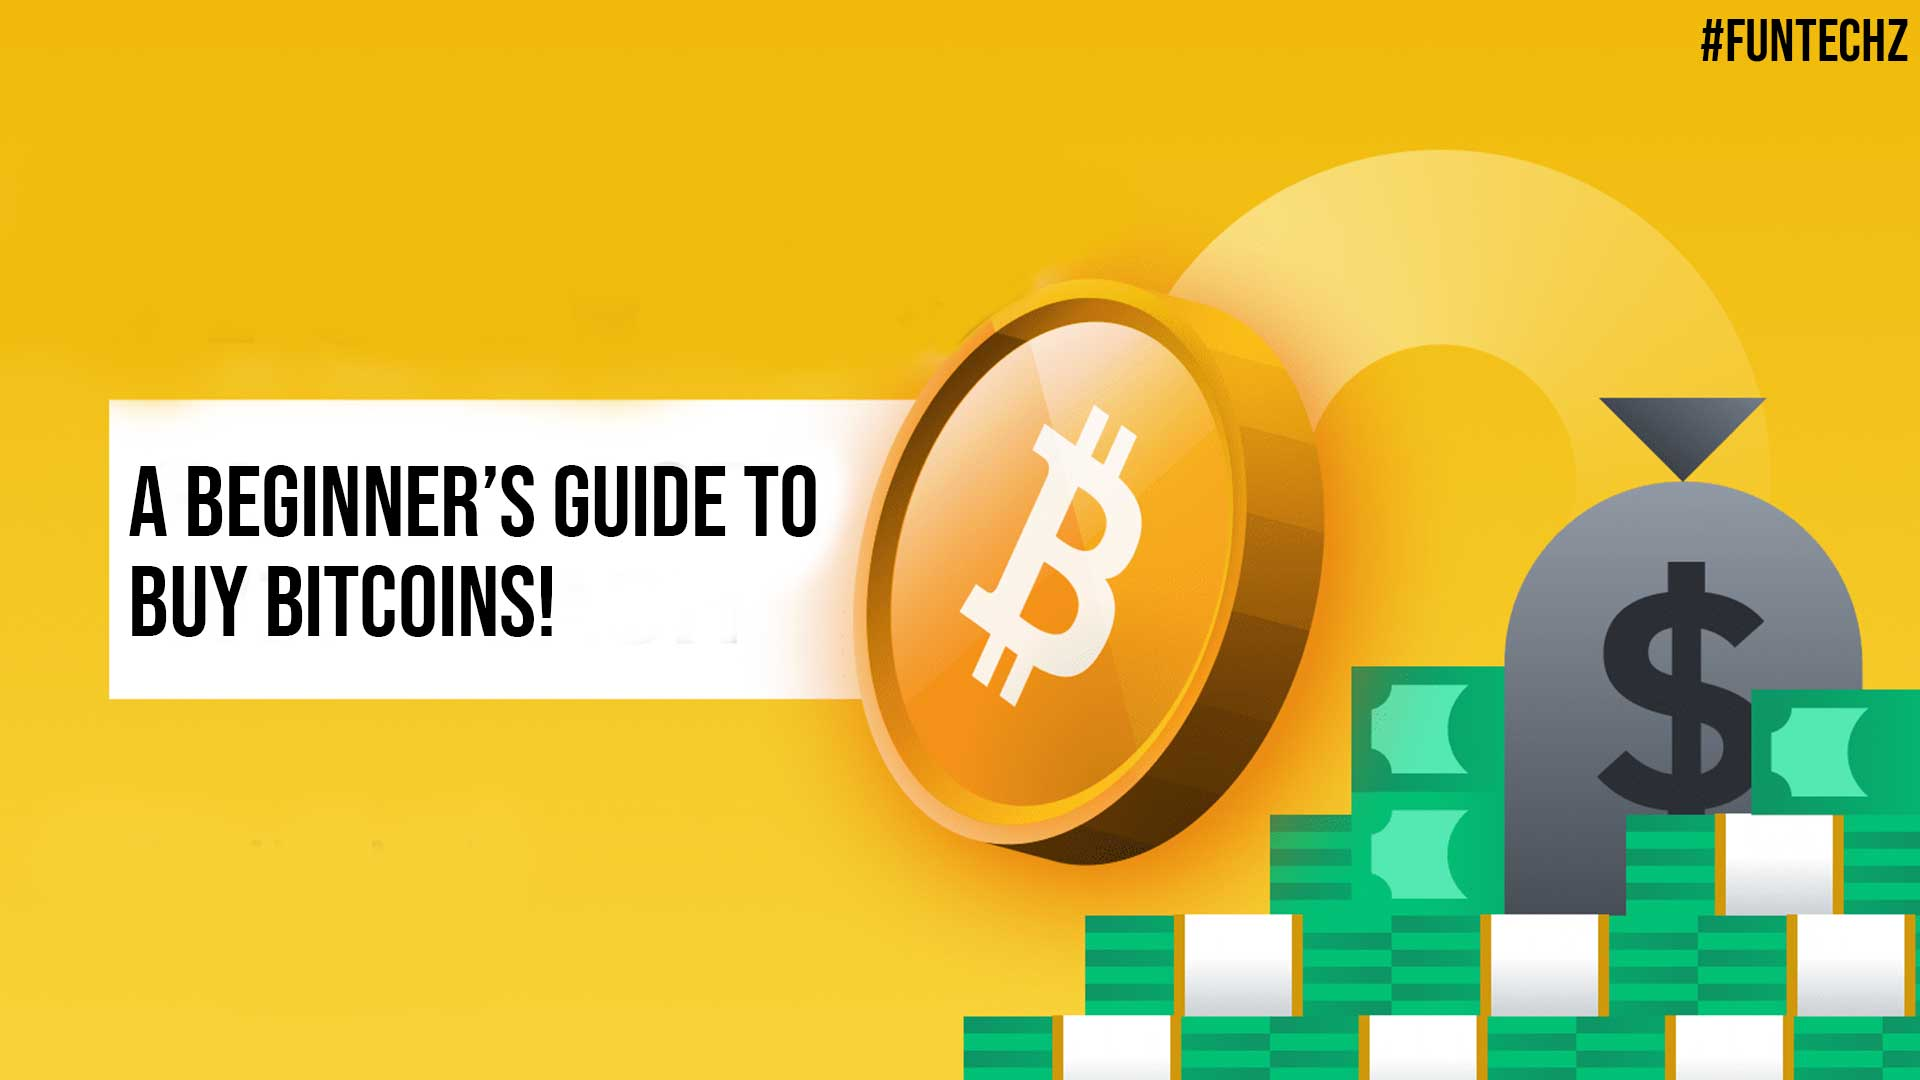 A Beginners Guide to Buy Bitcoins